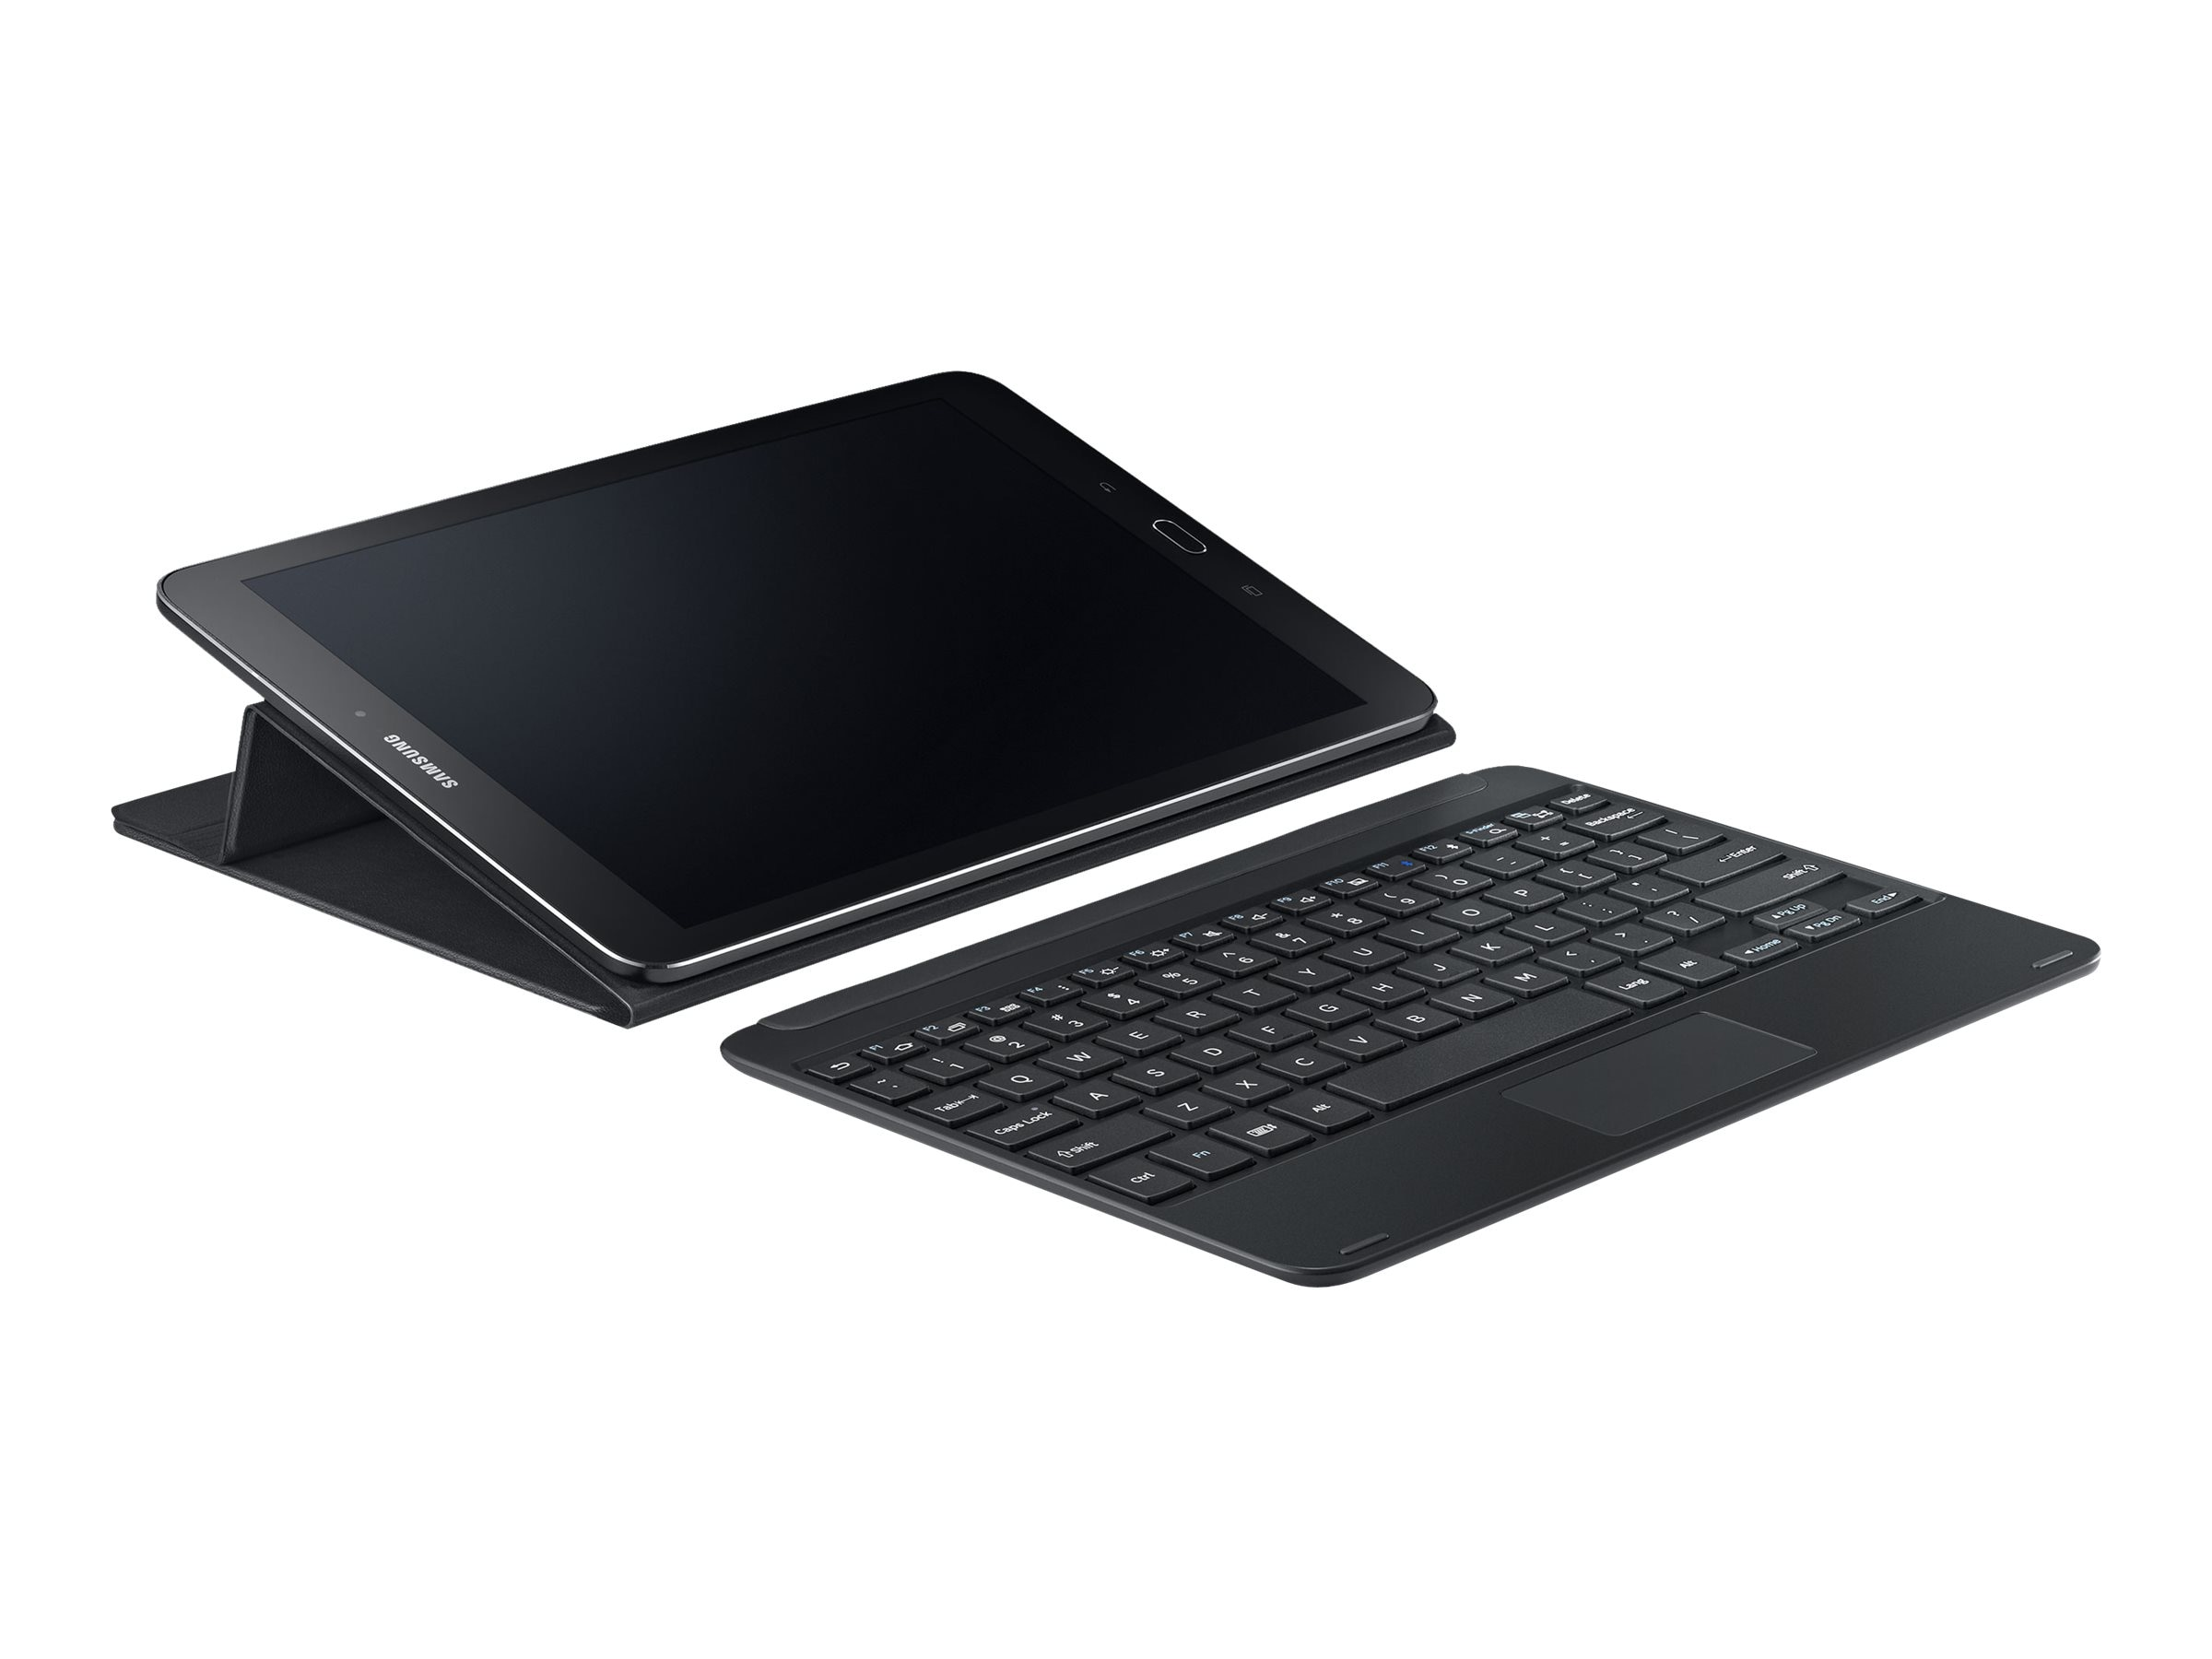 Samsung Keyboard Cover for Galaxy Tab S2 9.7, Black, EJ-FT810UBEGUJ